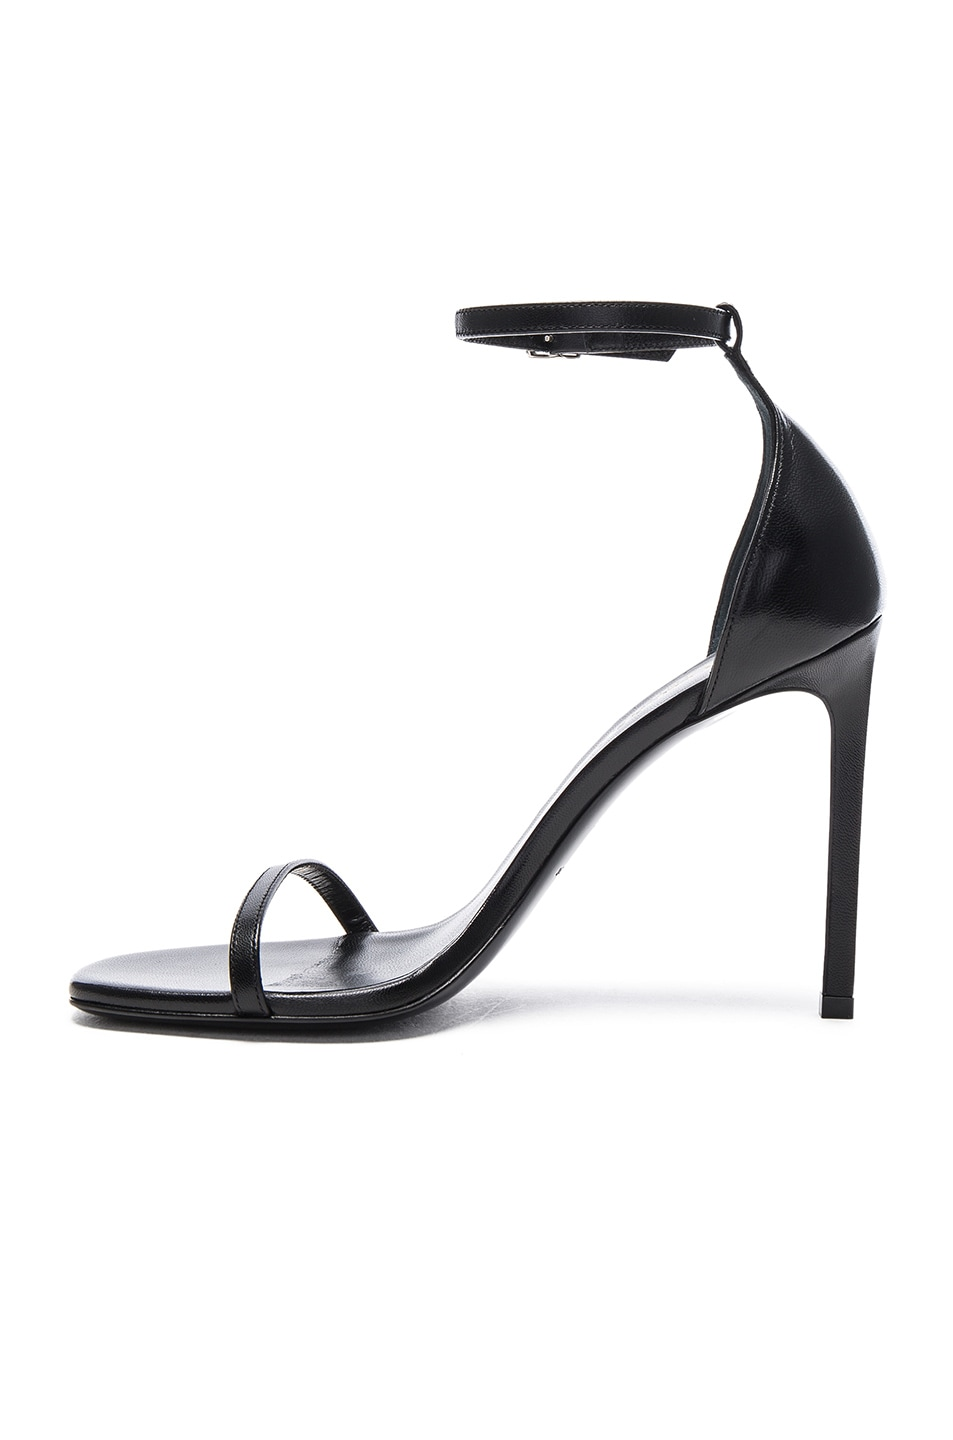 Image 5 of Saint Laurent Leather Jane Sandals in Black